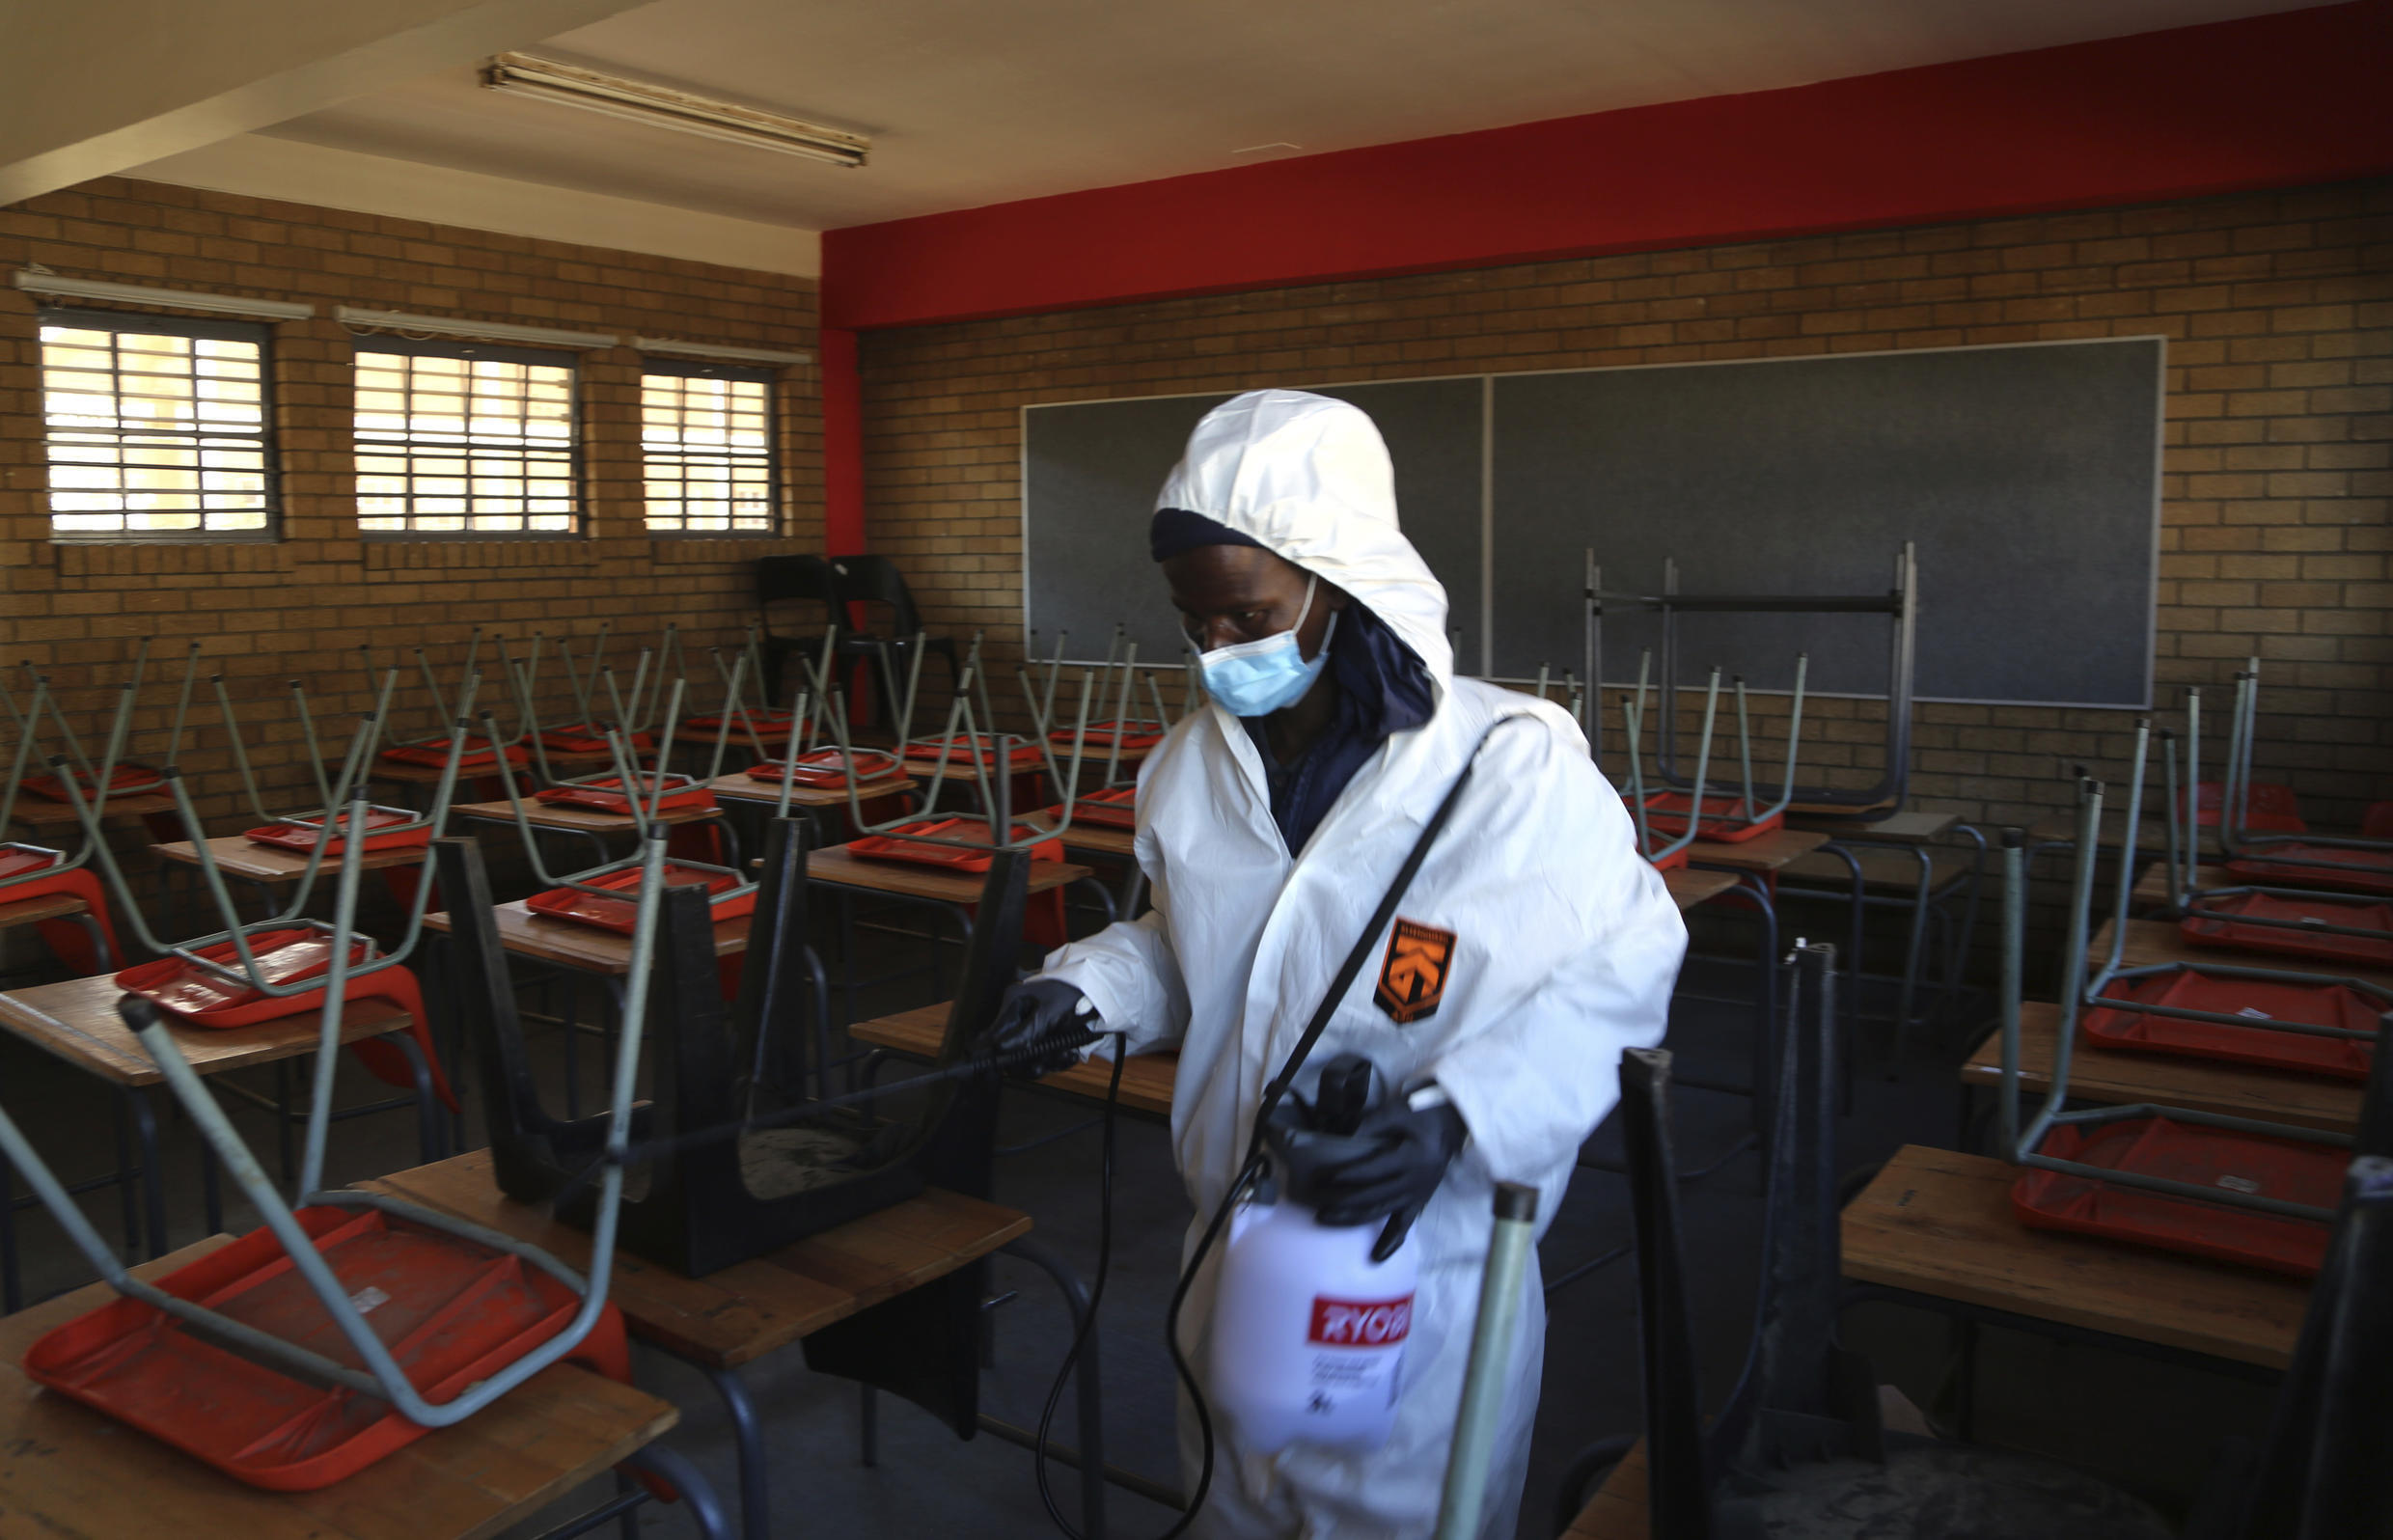 A cleaner sprays disinfectant in a classroom to help reduce the spread of Covid-19 ahead of the reopening of Landulwazi Comprehensive School, east of Johannesburg, South Africa.